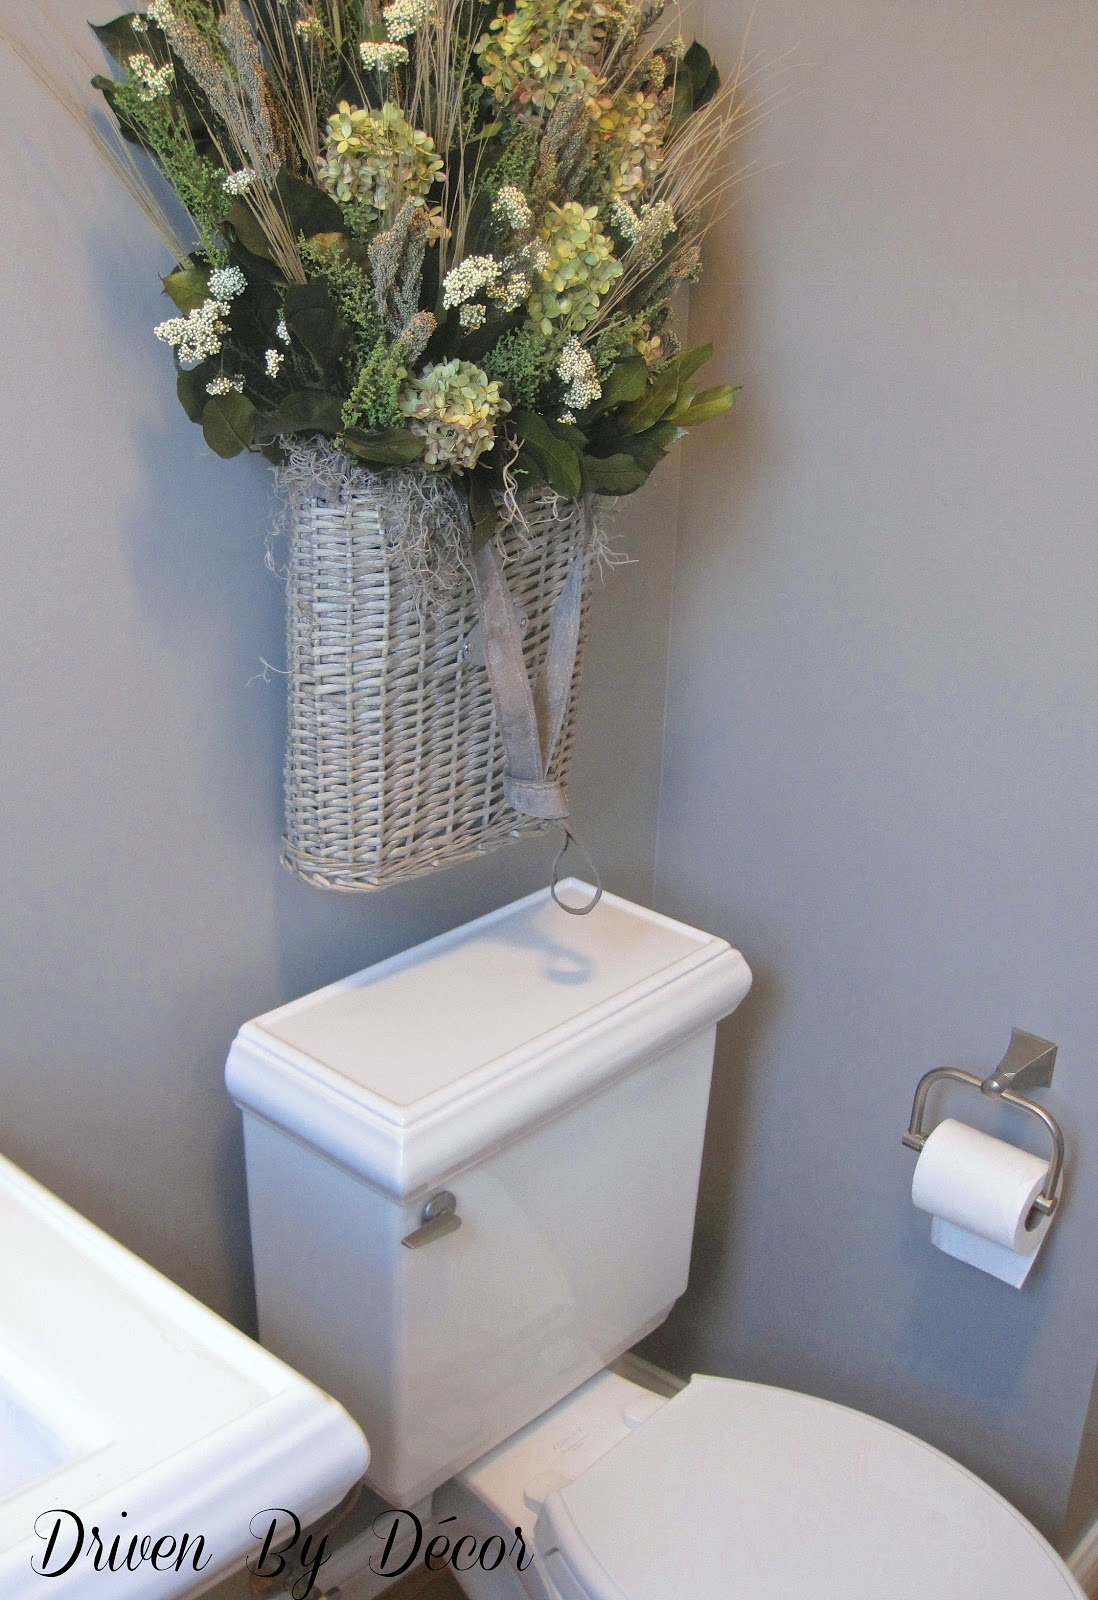 Toile decoration 28 images toilet room houzz the idea of covering the toilet tank lid great - Decoration toilette ...